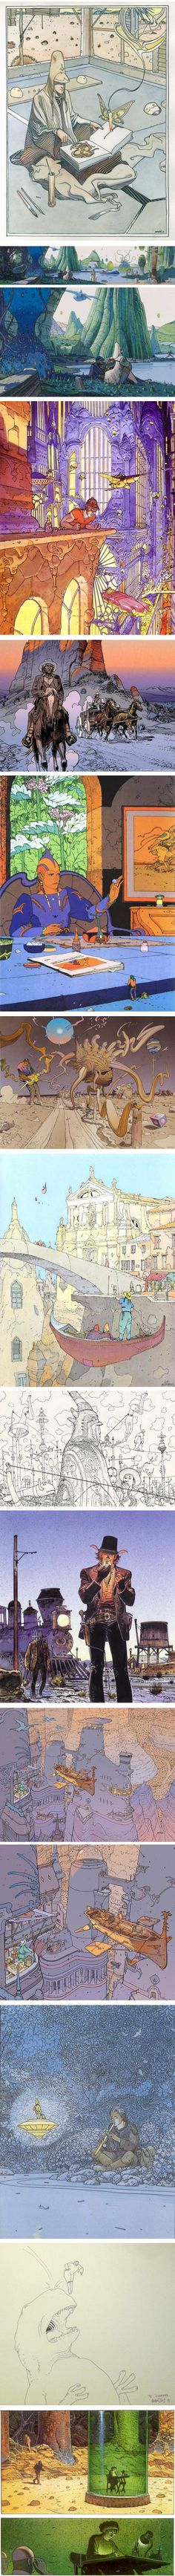 there's any artist that I associate with magic coming to life from the pages of a book, it's French comics artist, illustrator and movie concept artist Jean Giraud, more commonly known by his pen name, Moebius.    I was saddened to learn that Giraud died today, March 10, 2012, at the age of 73.